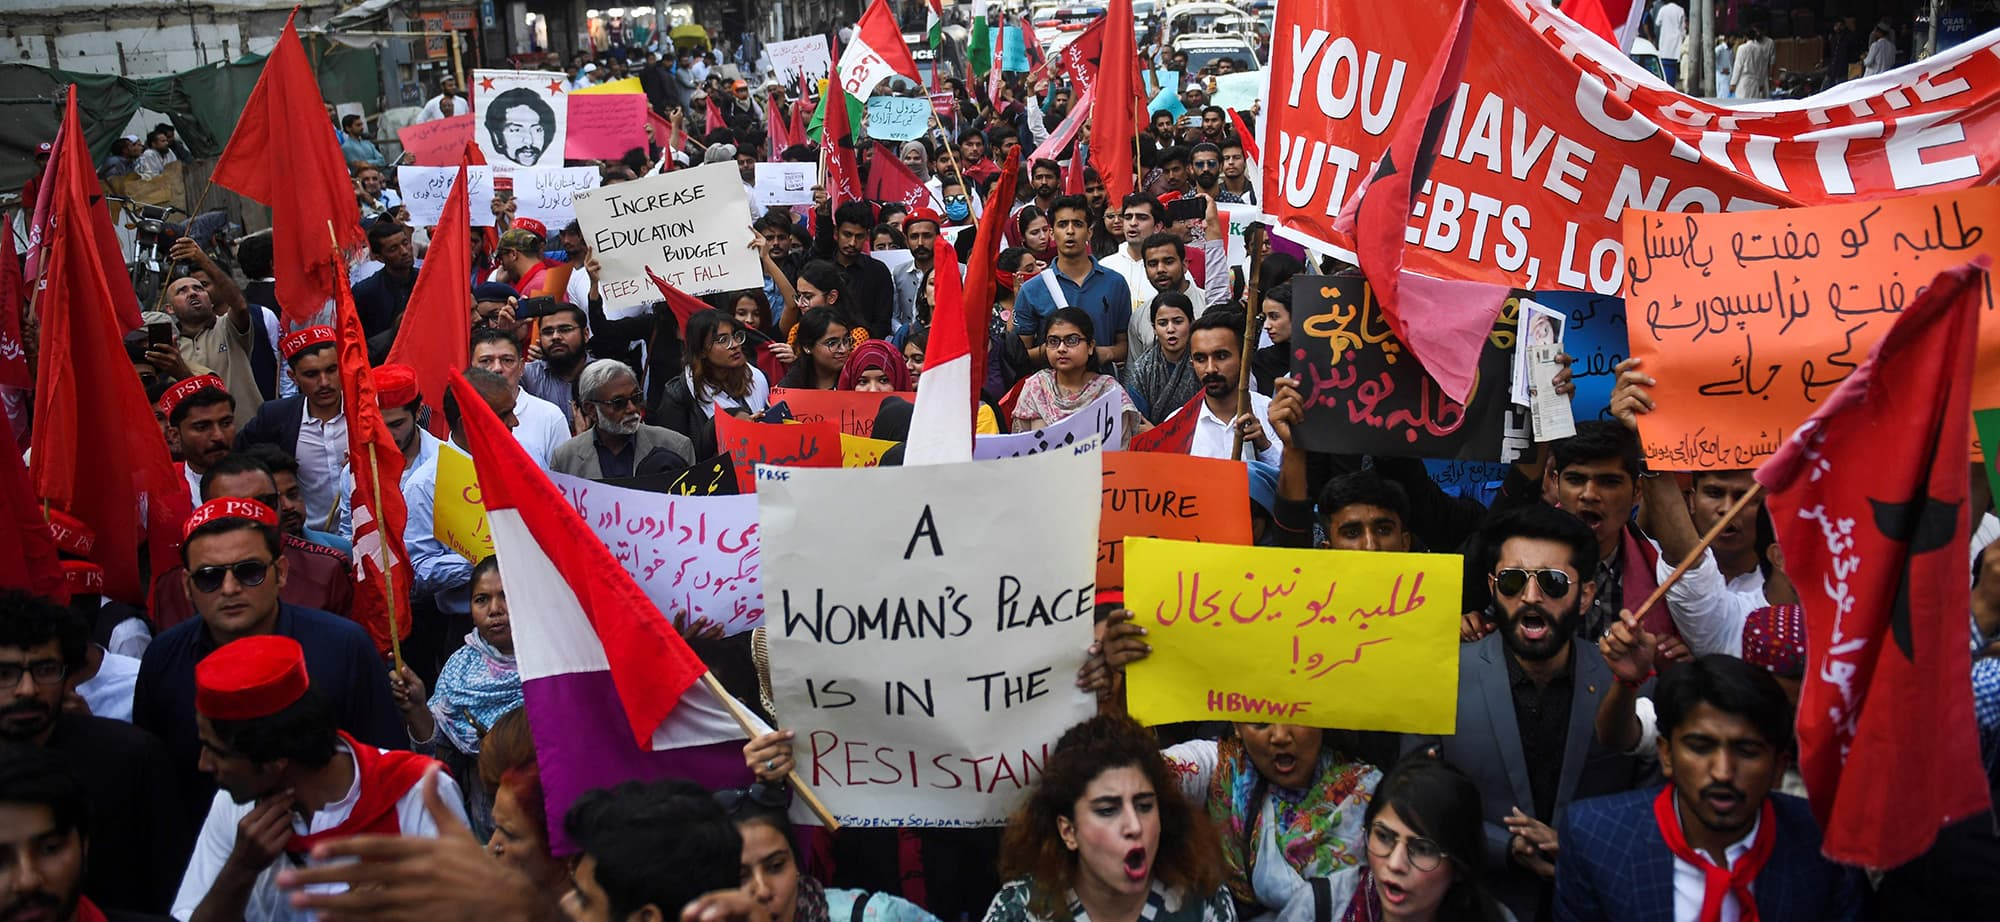 Protesters take part in a demonstration demanding for reinstatement of student unions, education fee cuts and batter education facilities, in Karachi on November 29, 2019. (Photo by Asif HASSAN / AFP) — AFP or licensors